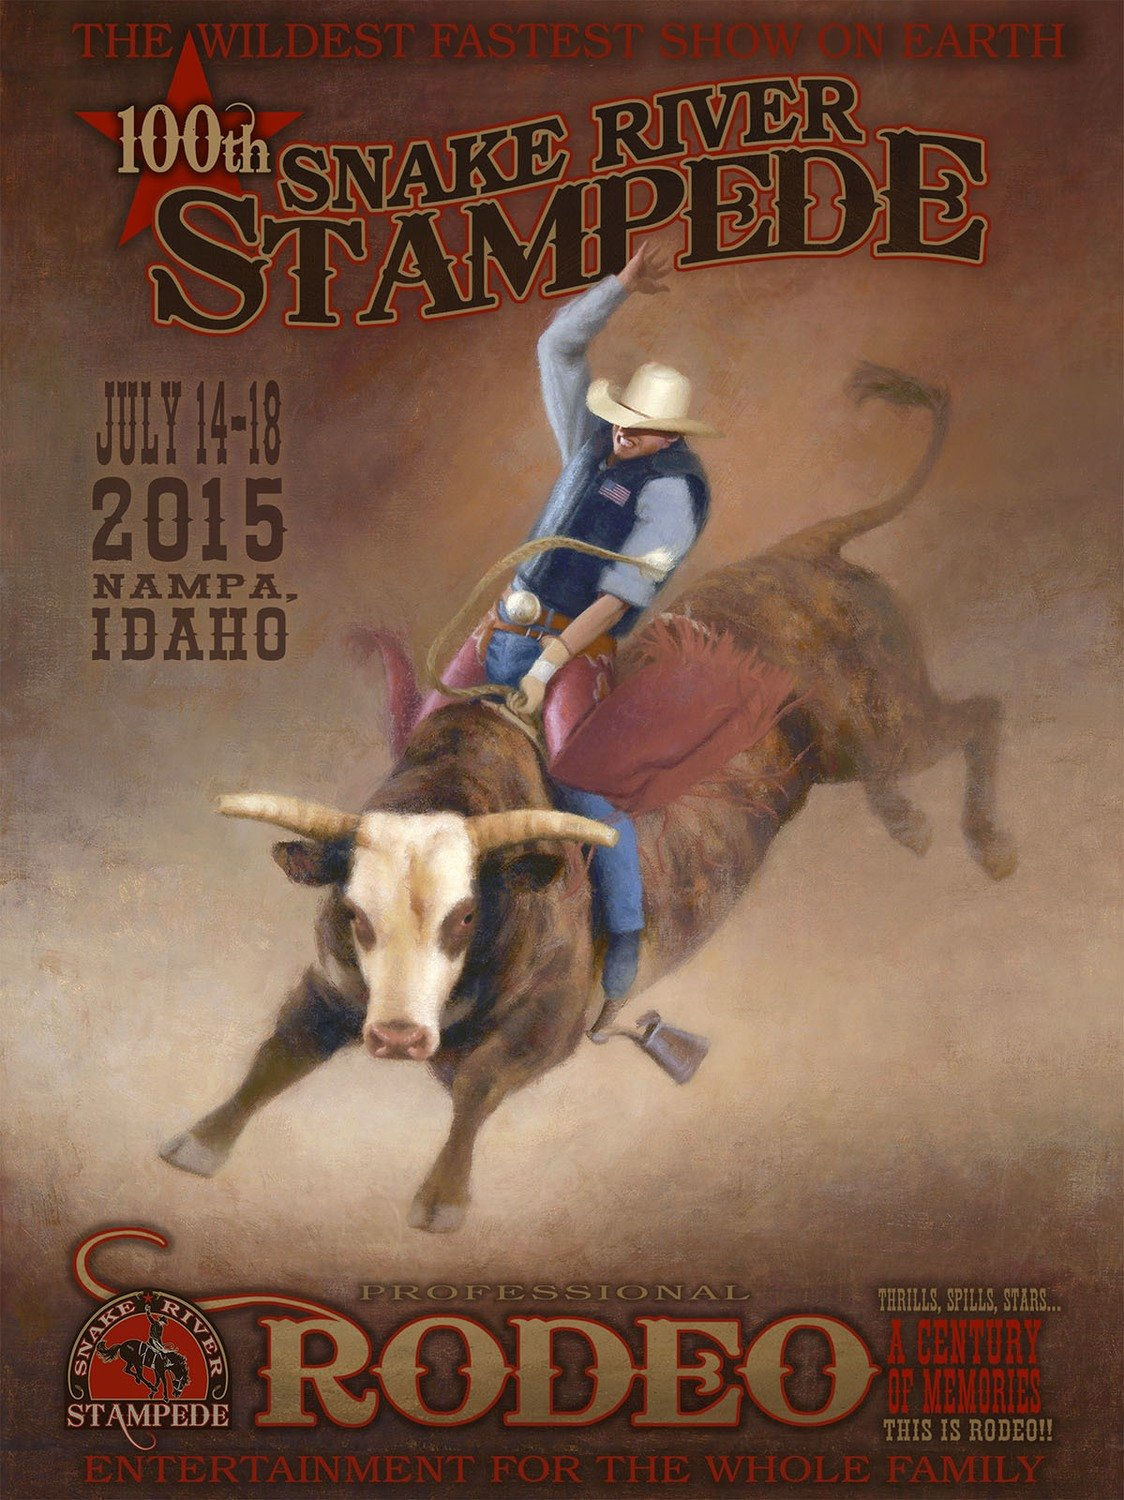 2015 OFFICIAL RODEO POSTER